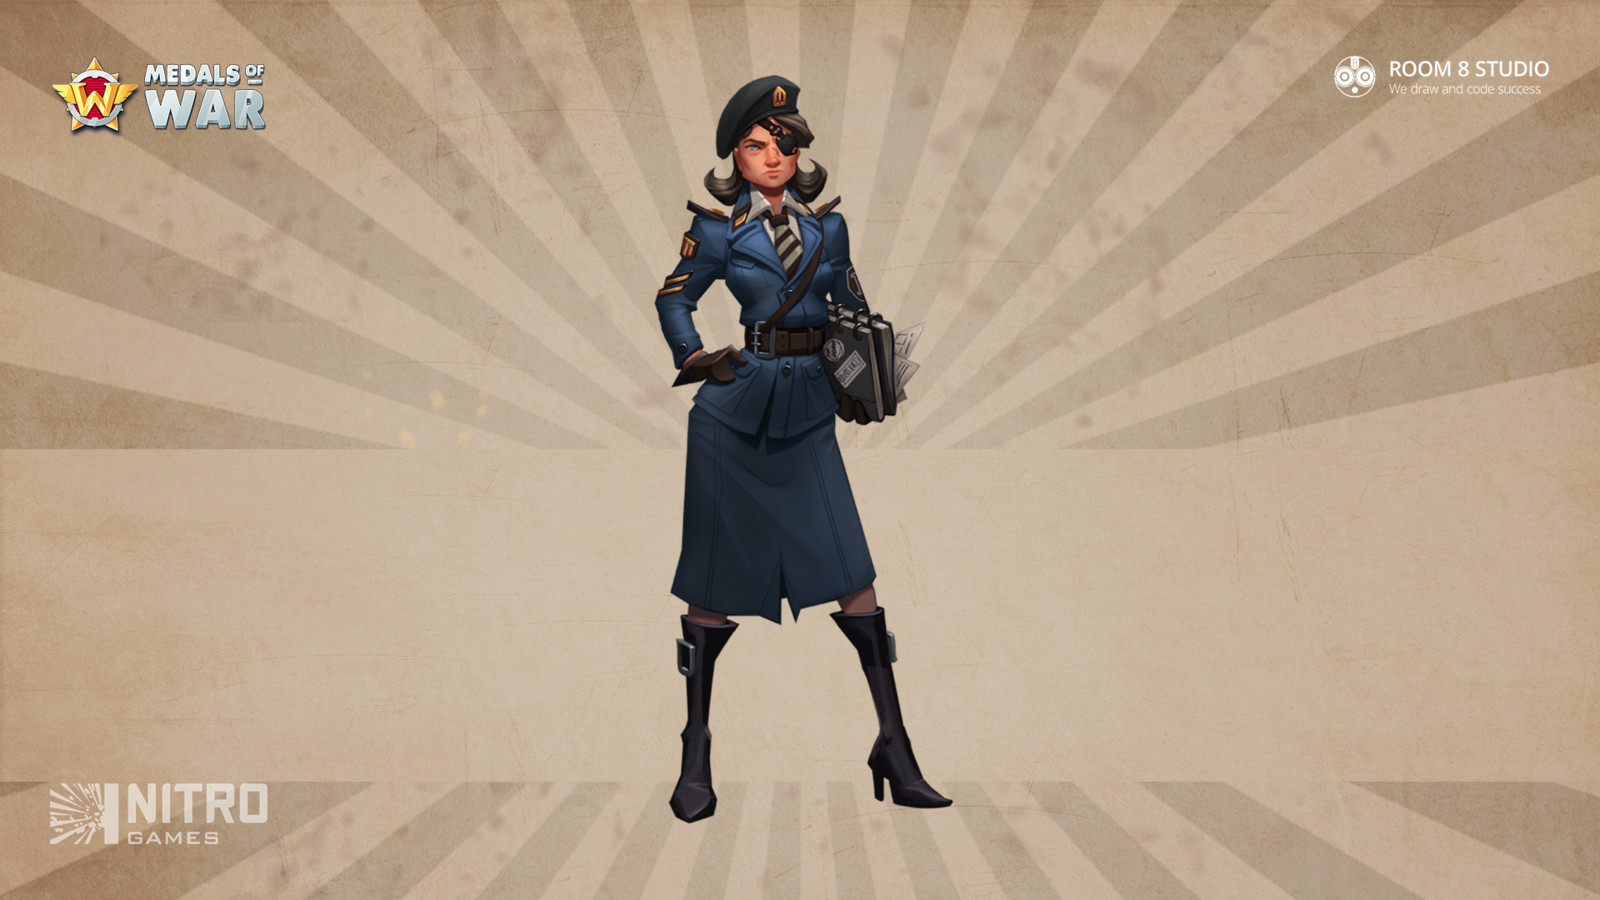 Officer Simone Venin: Concept Art